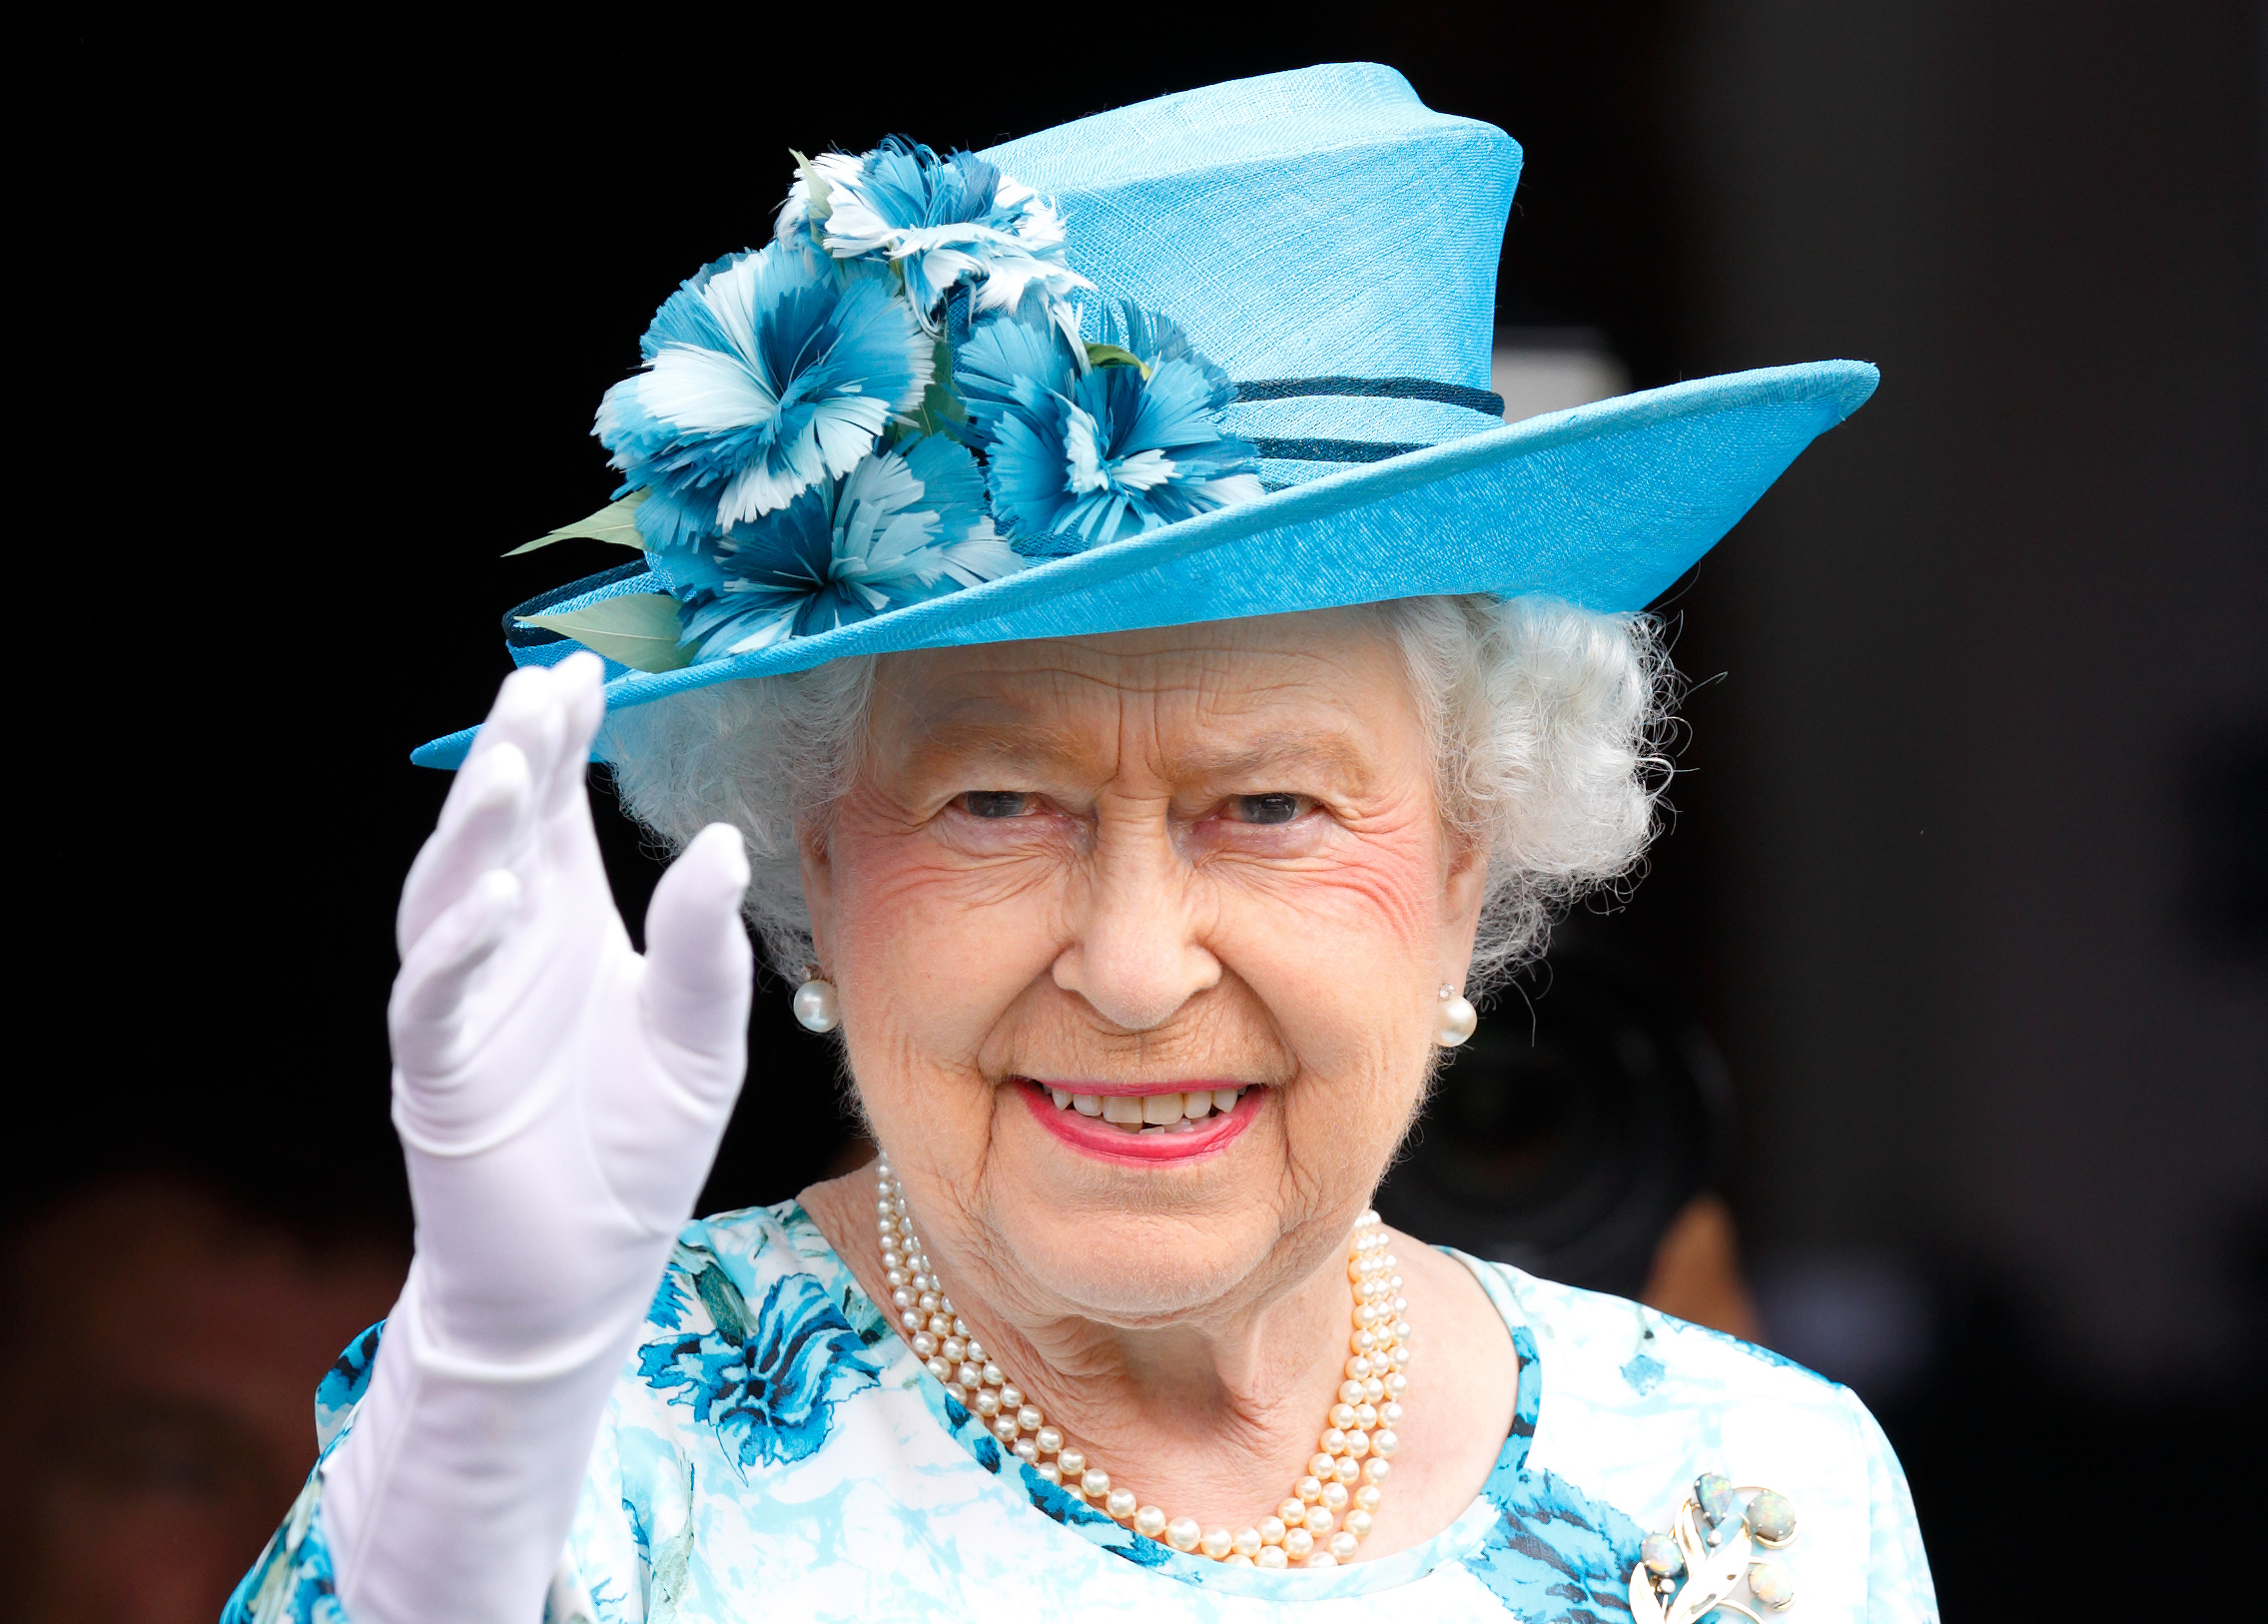 Queen Elizabeth II during a day of engagements in Barking, England on July 16, 2015.